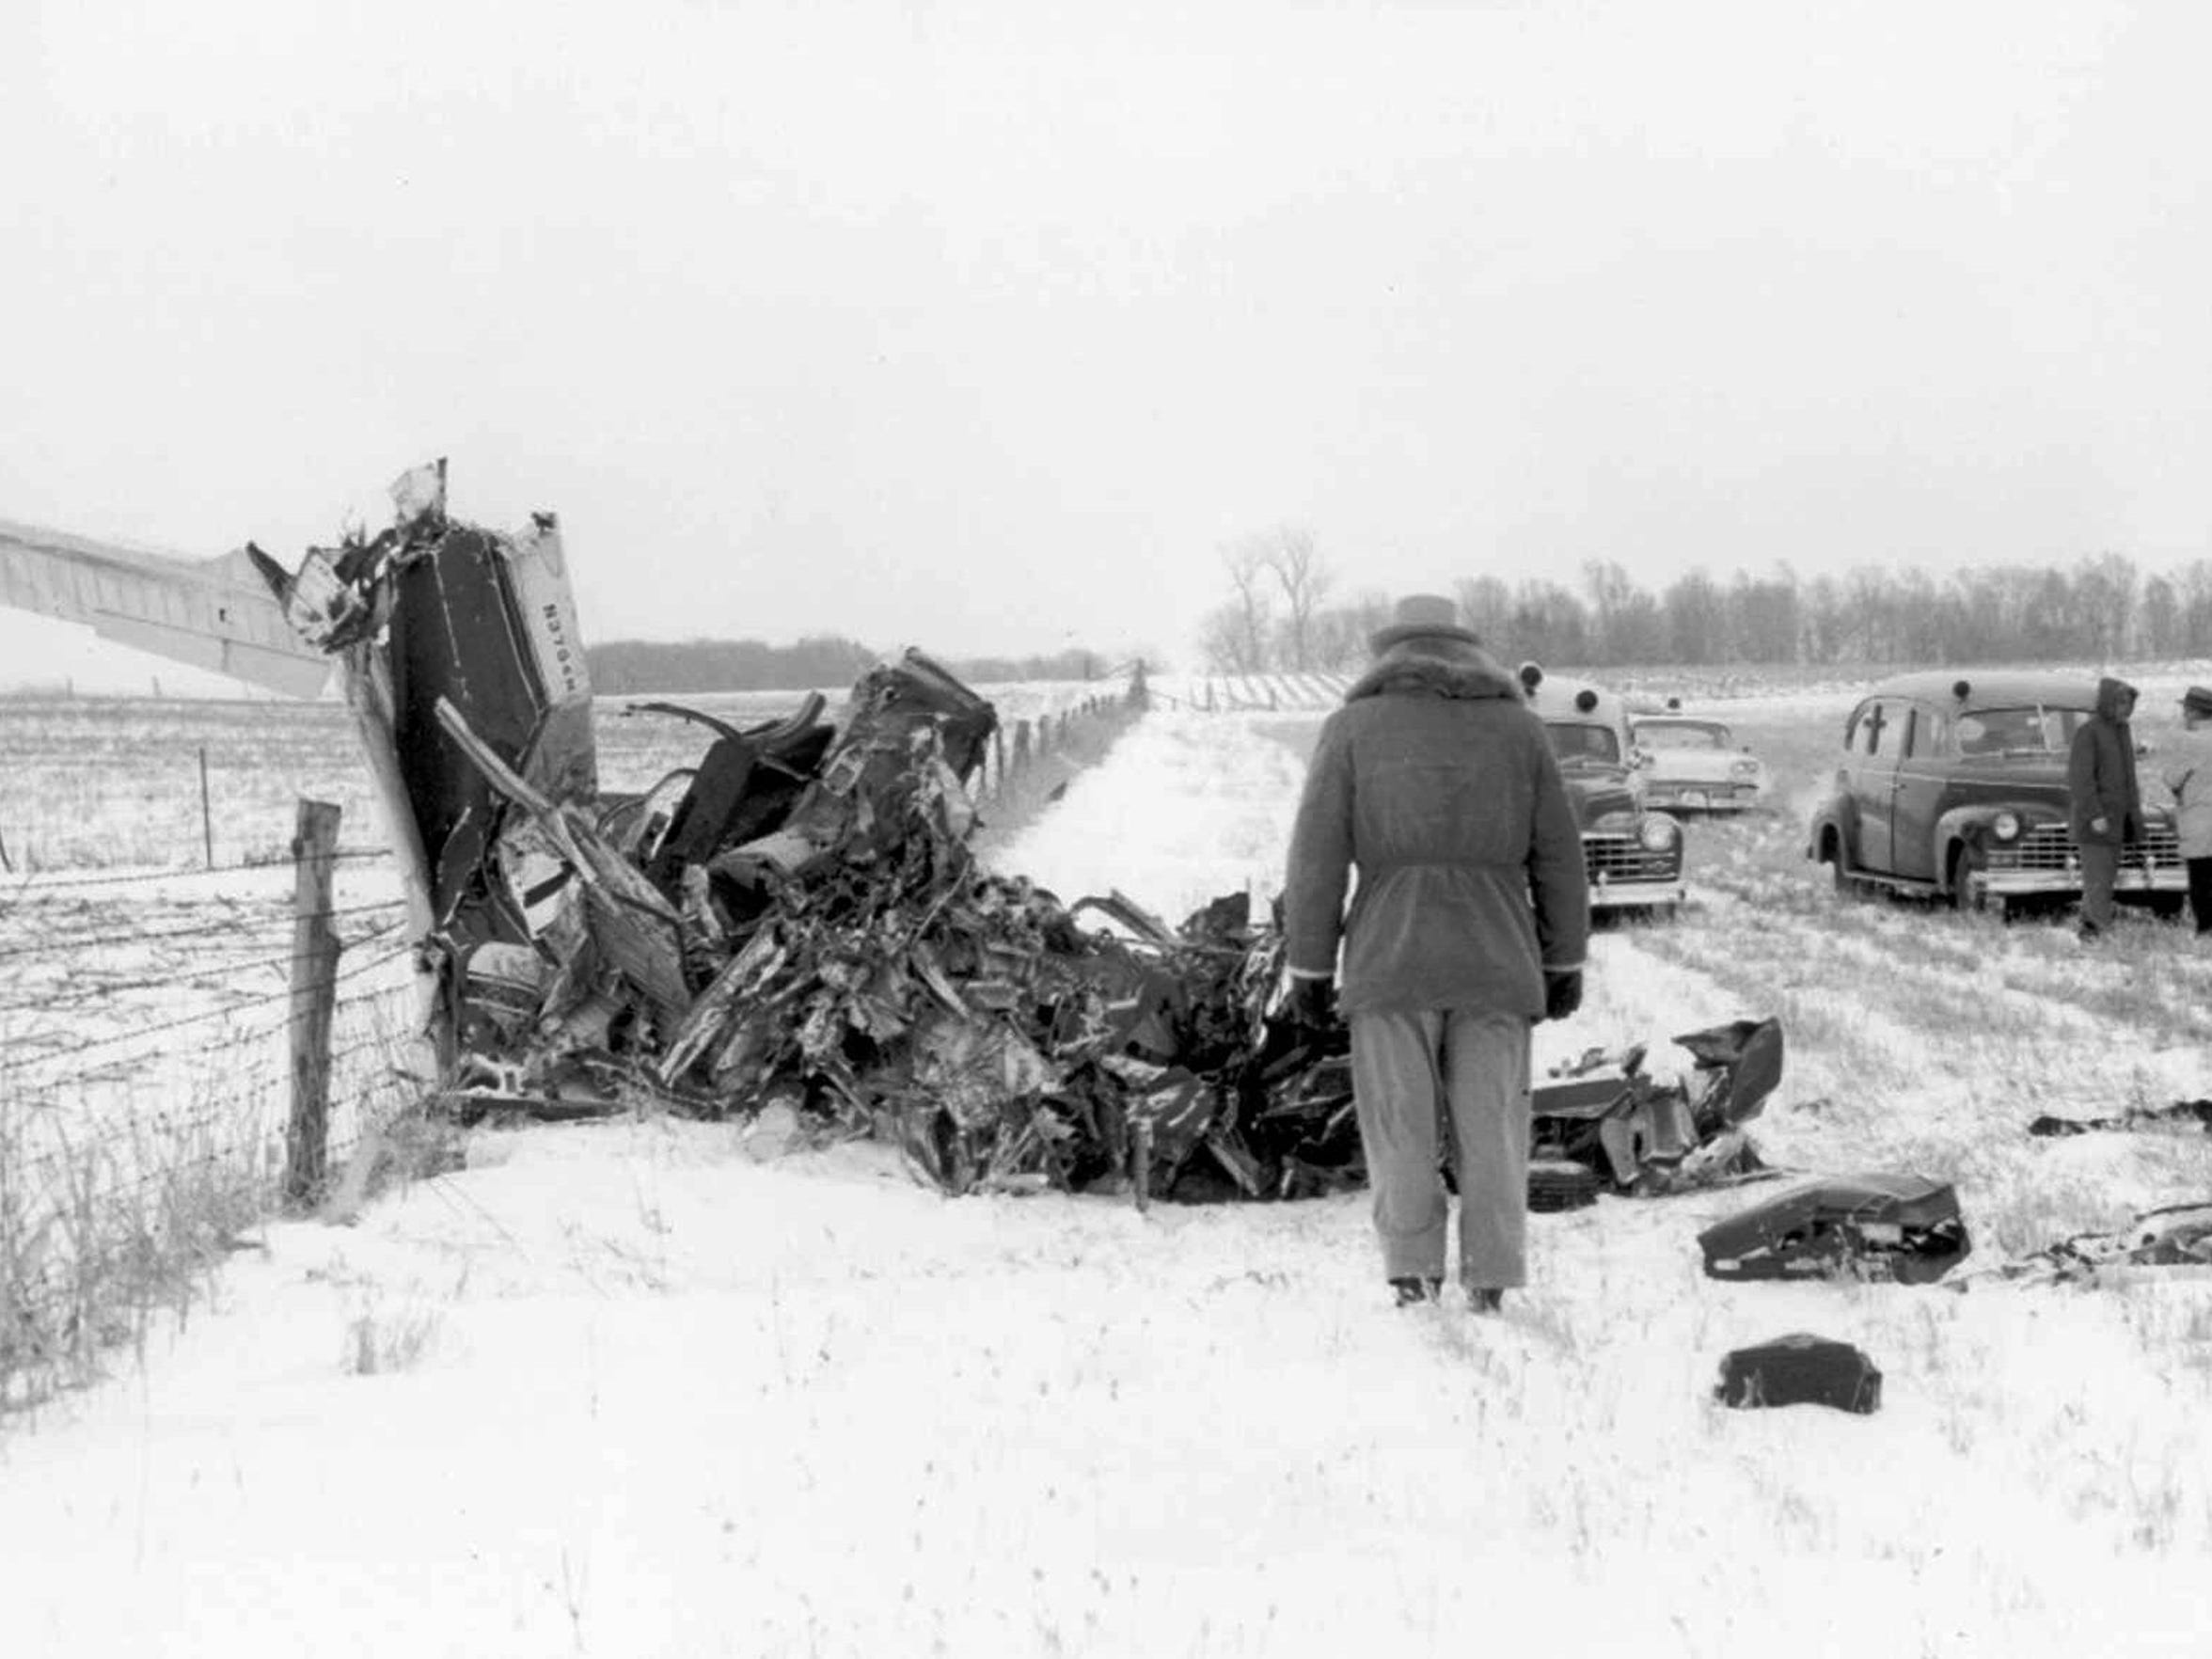 Officials survey the wreckage on Feb. 3, 1959, of a